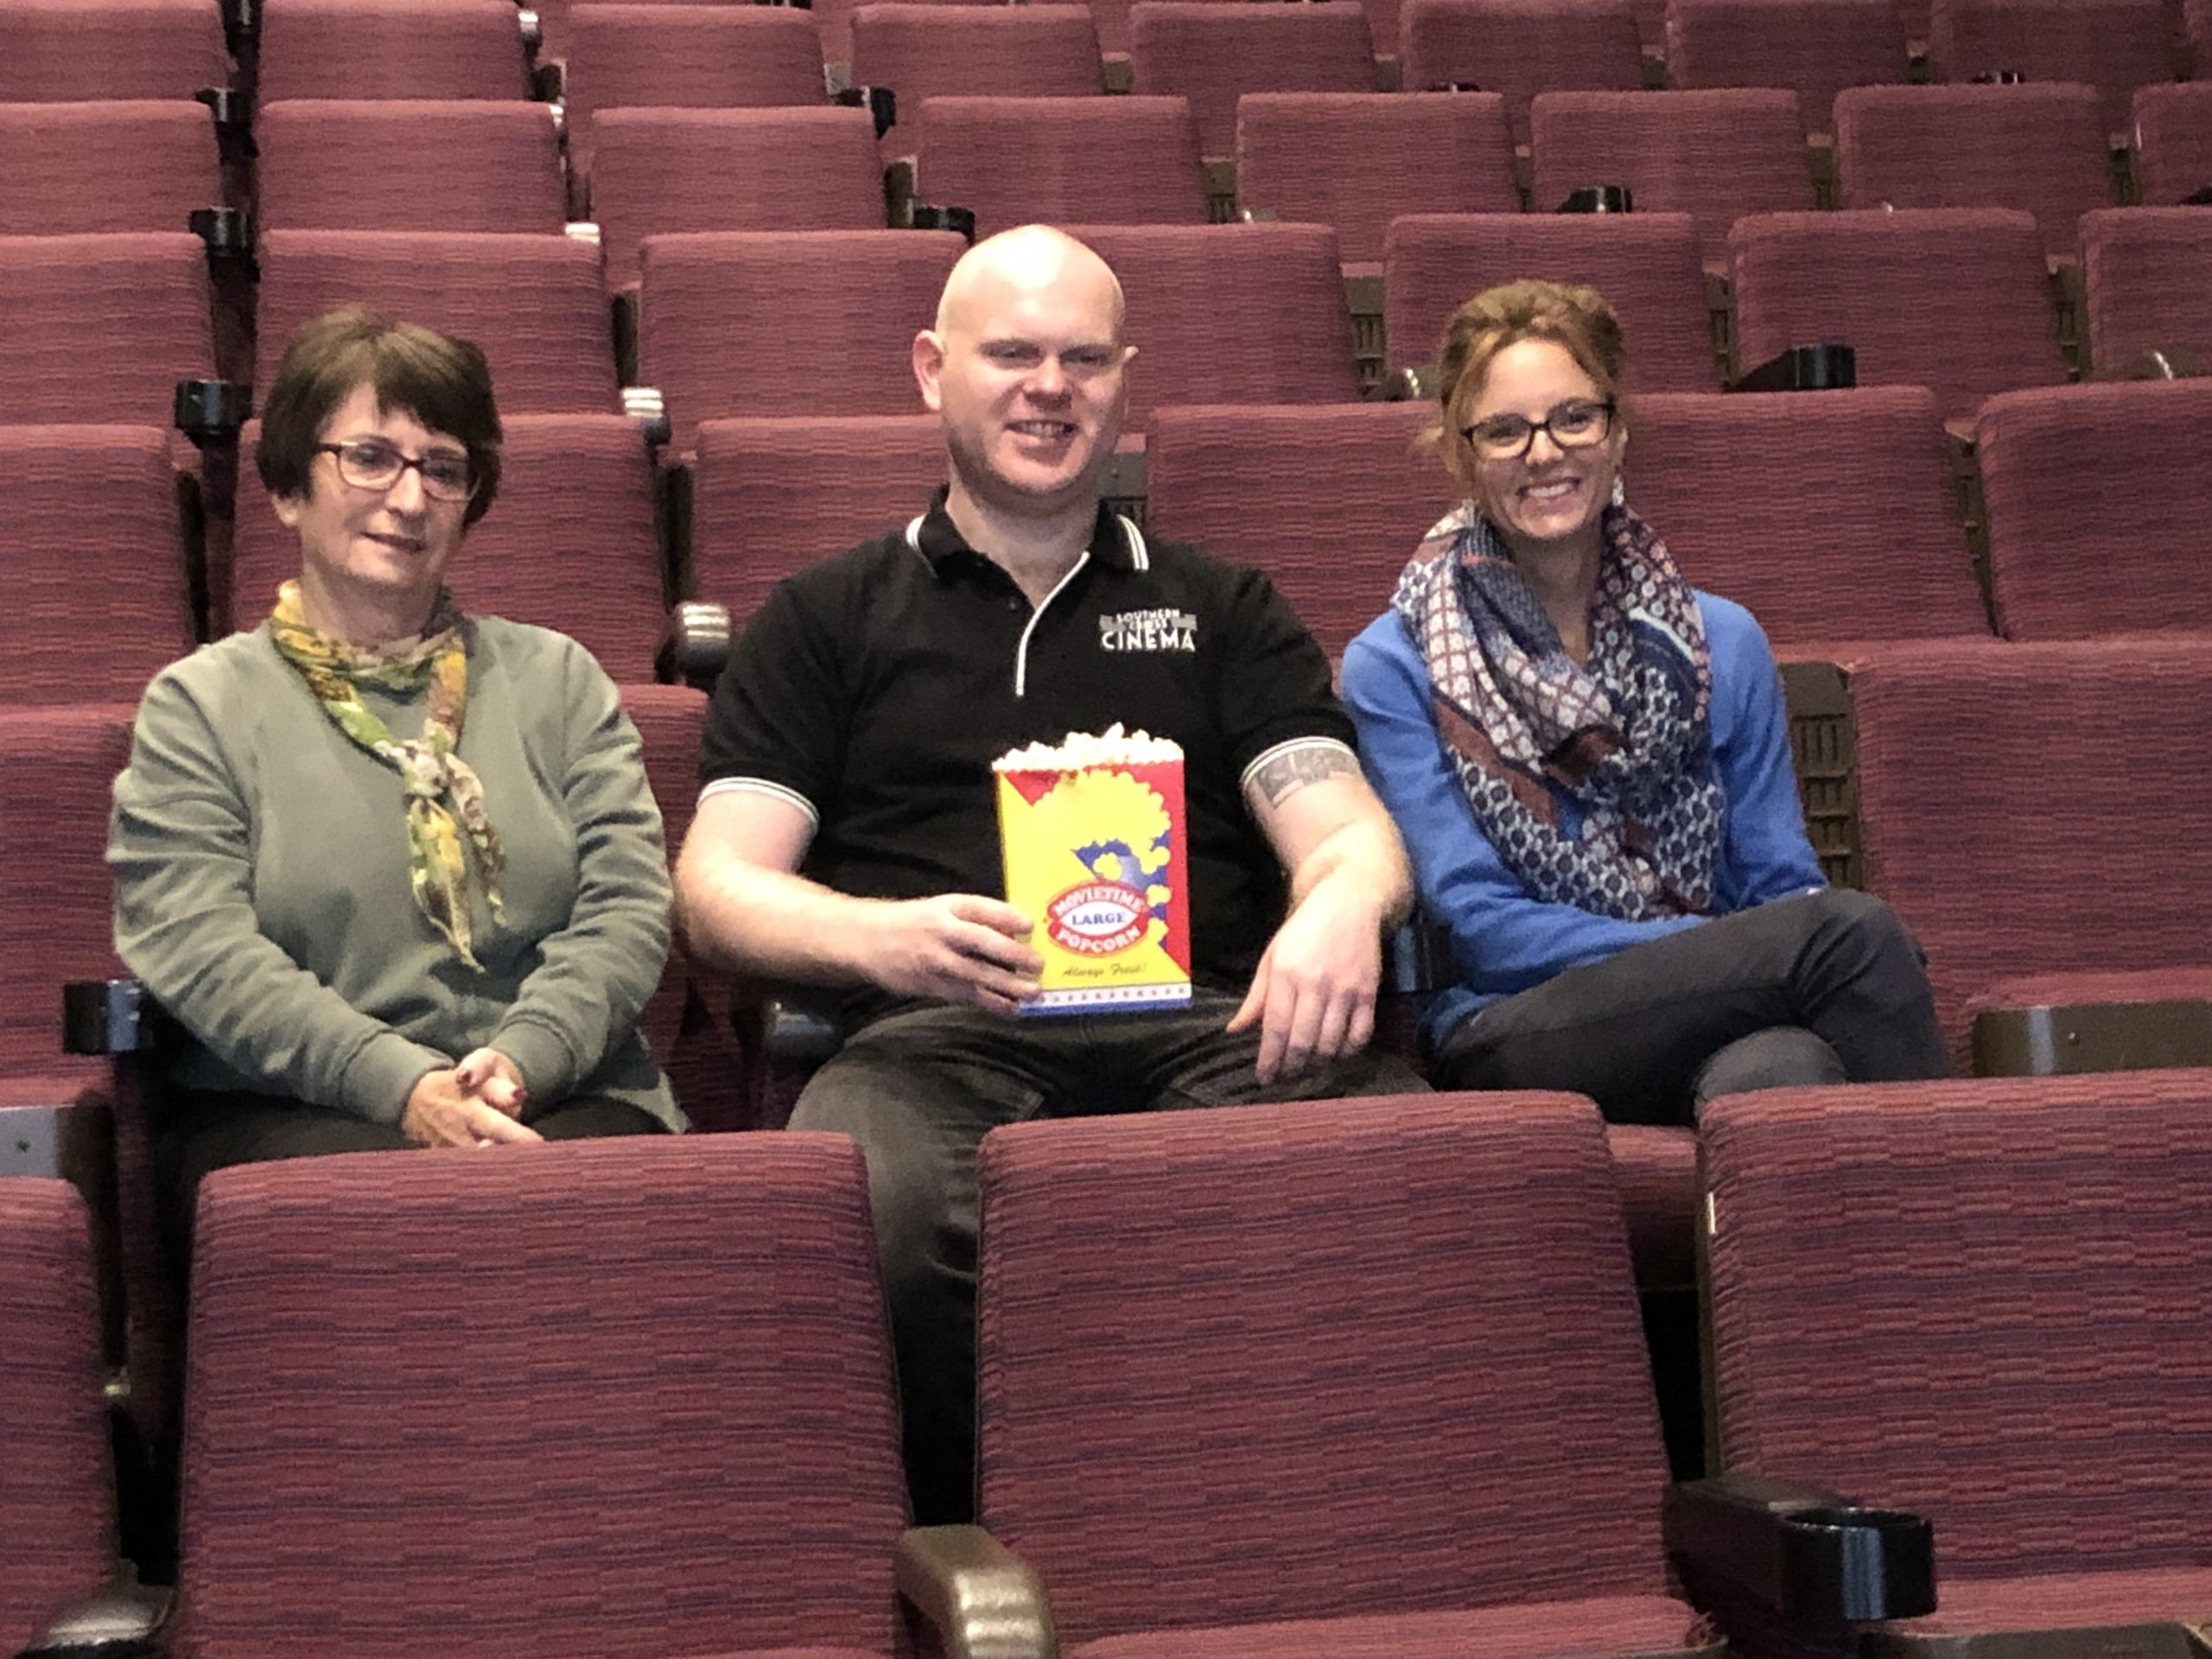 Joy Rule, Matthew Hall and Steph Cooke sit in a cinema and share a box of popcorn.